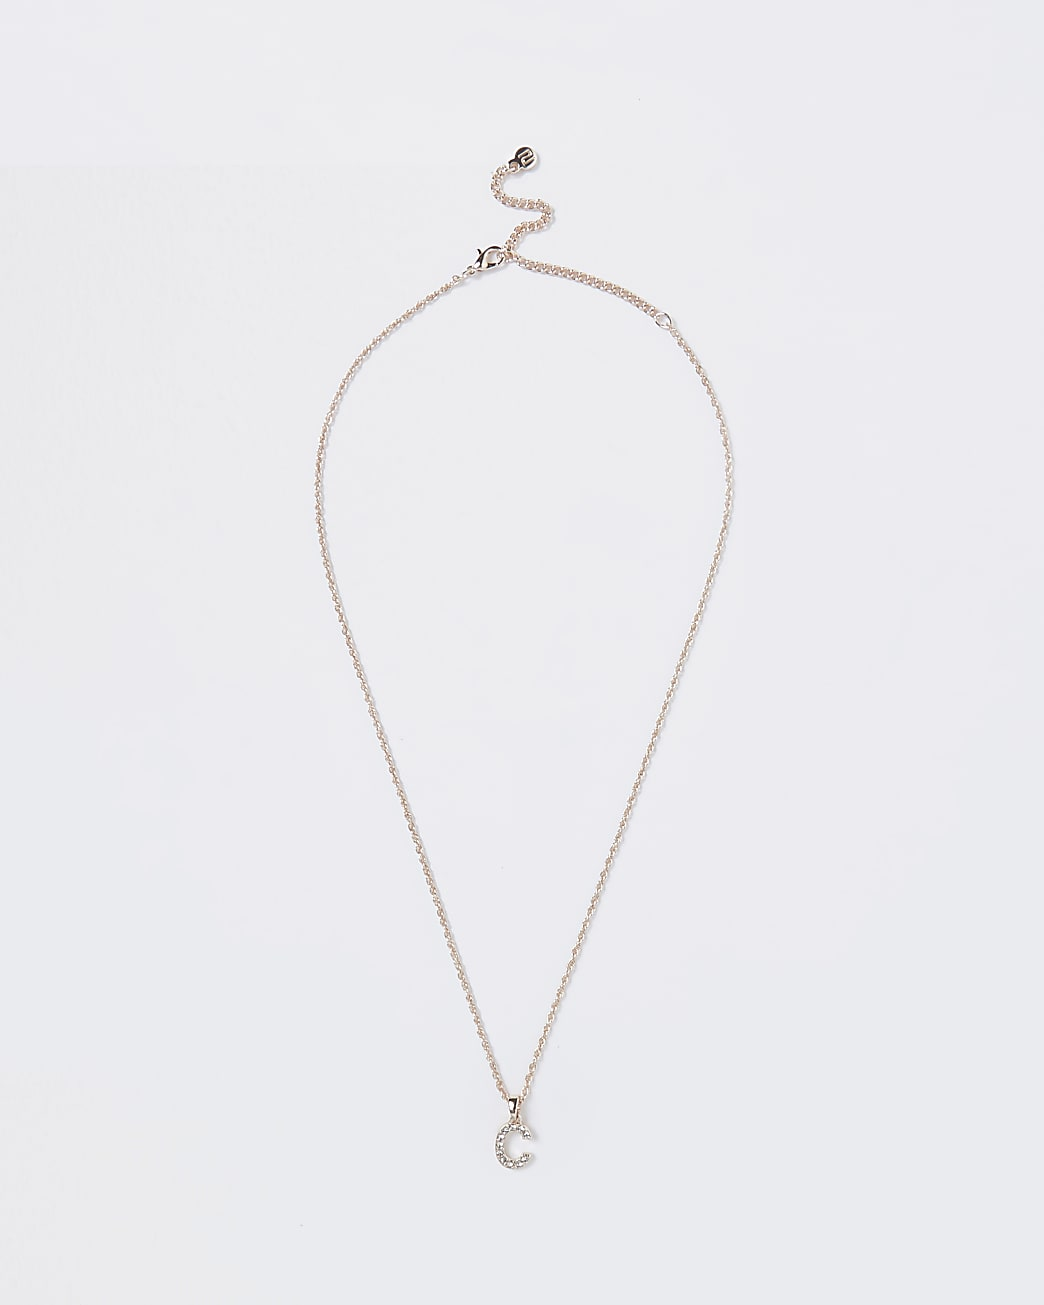 Rose Gold pave C Initial ditsy charm necklace